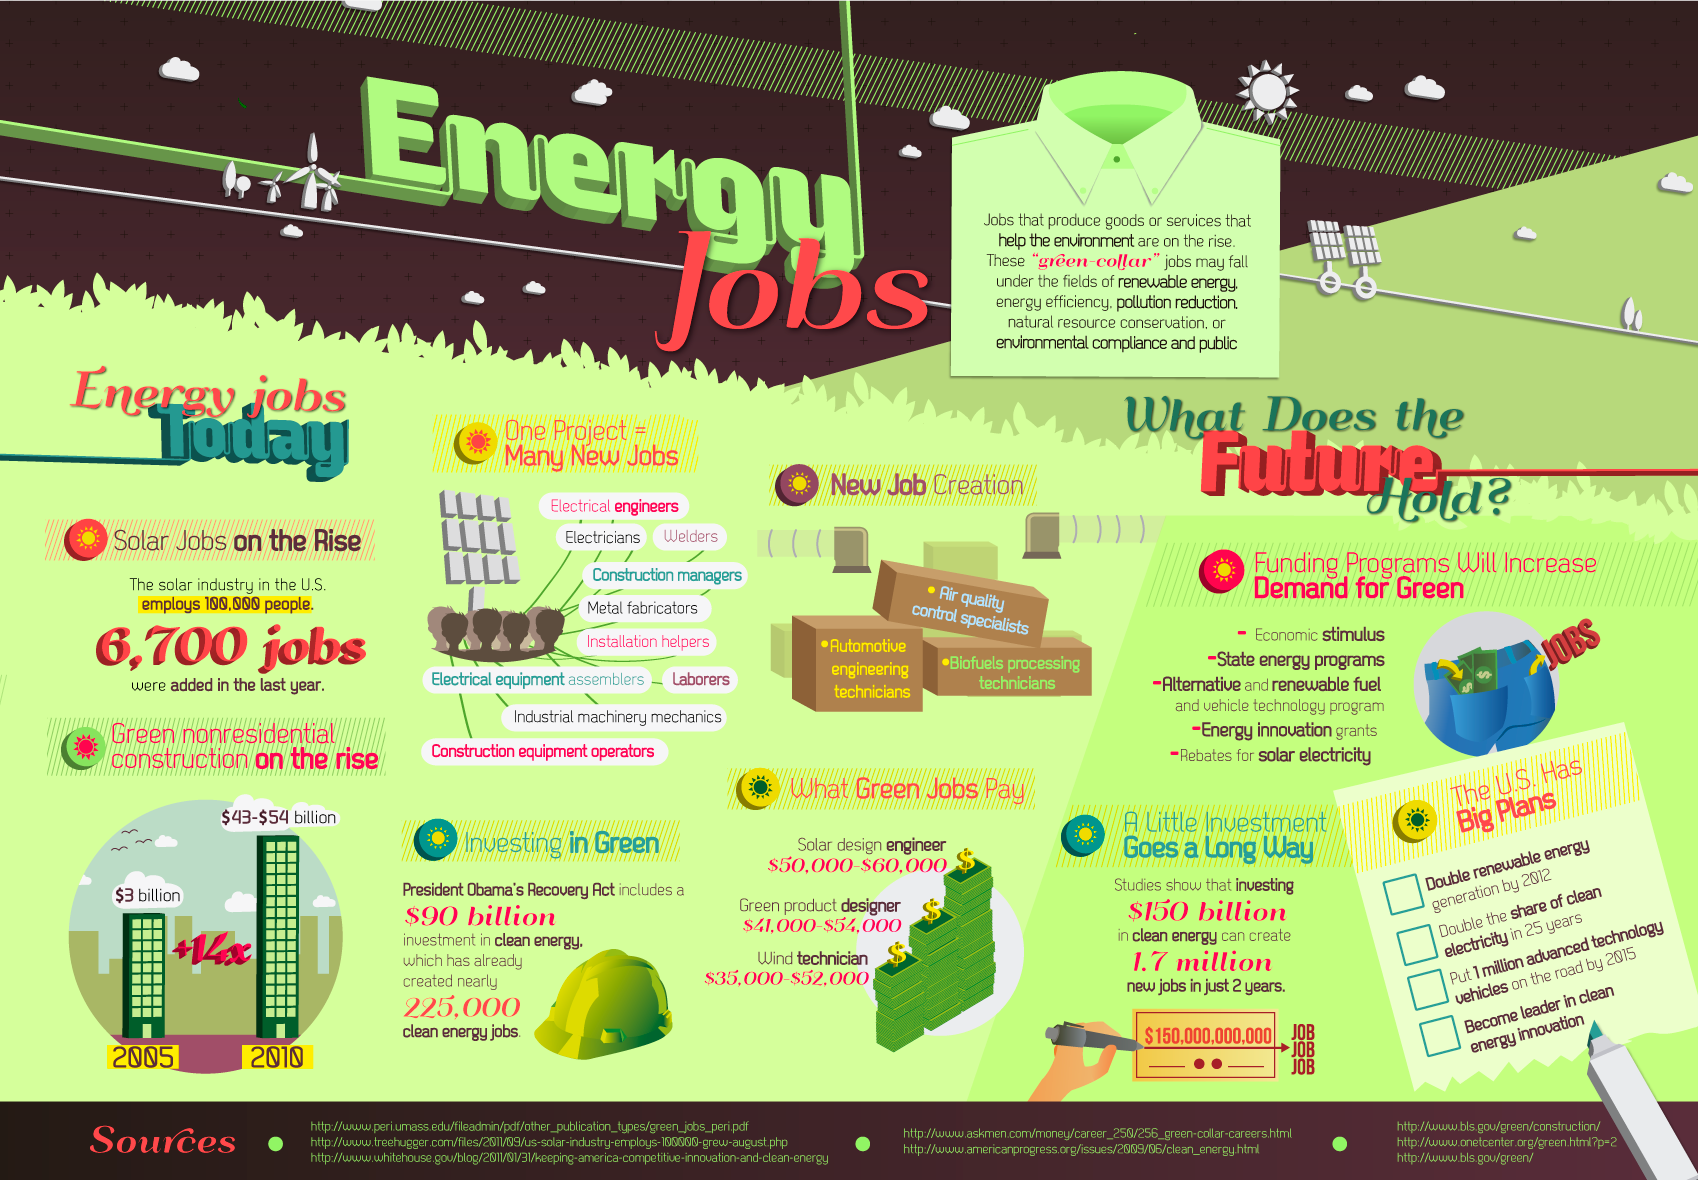 Green Jobs Infographic. Photo from dingo care2.